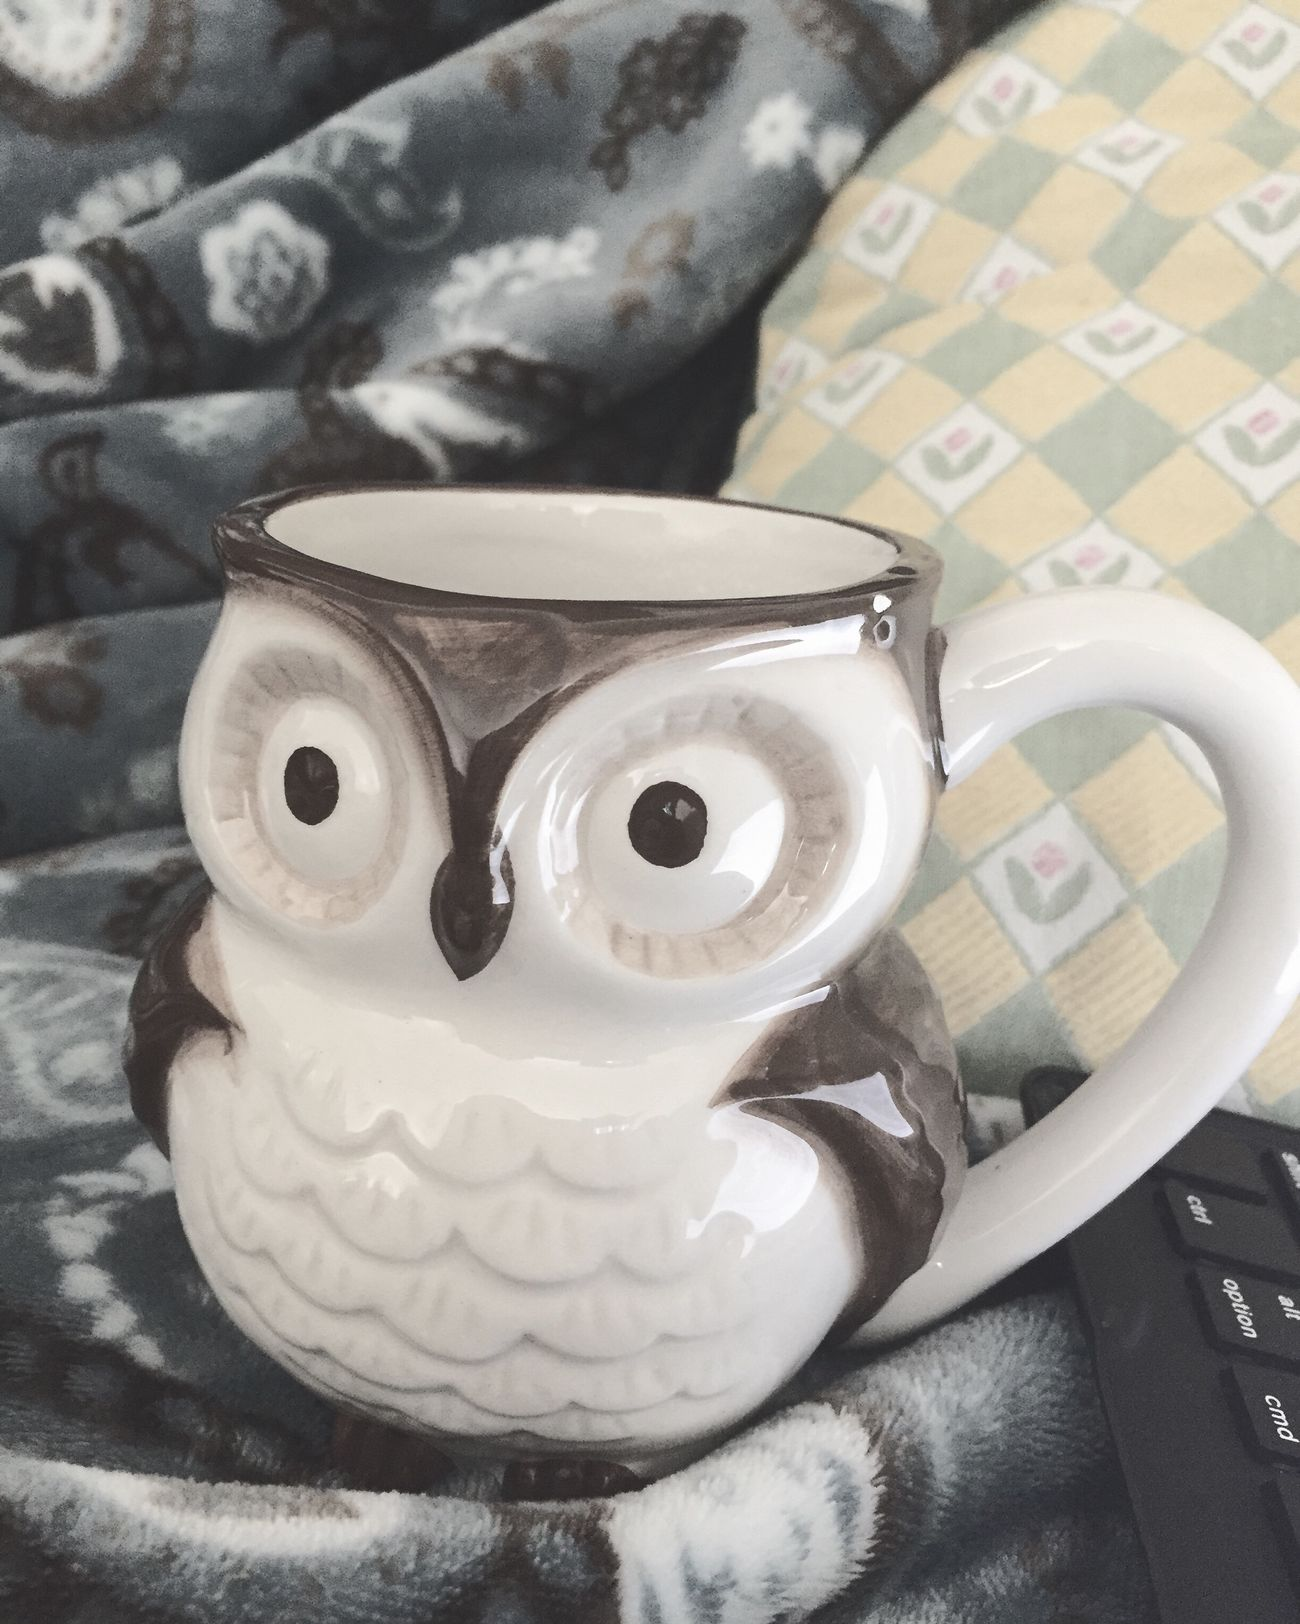 Sunday's are such a HOOT Coffee Mug Owl World Market International Lazy Lazy Day Netflix Studying Engineering